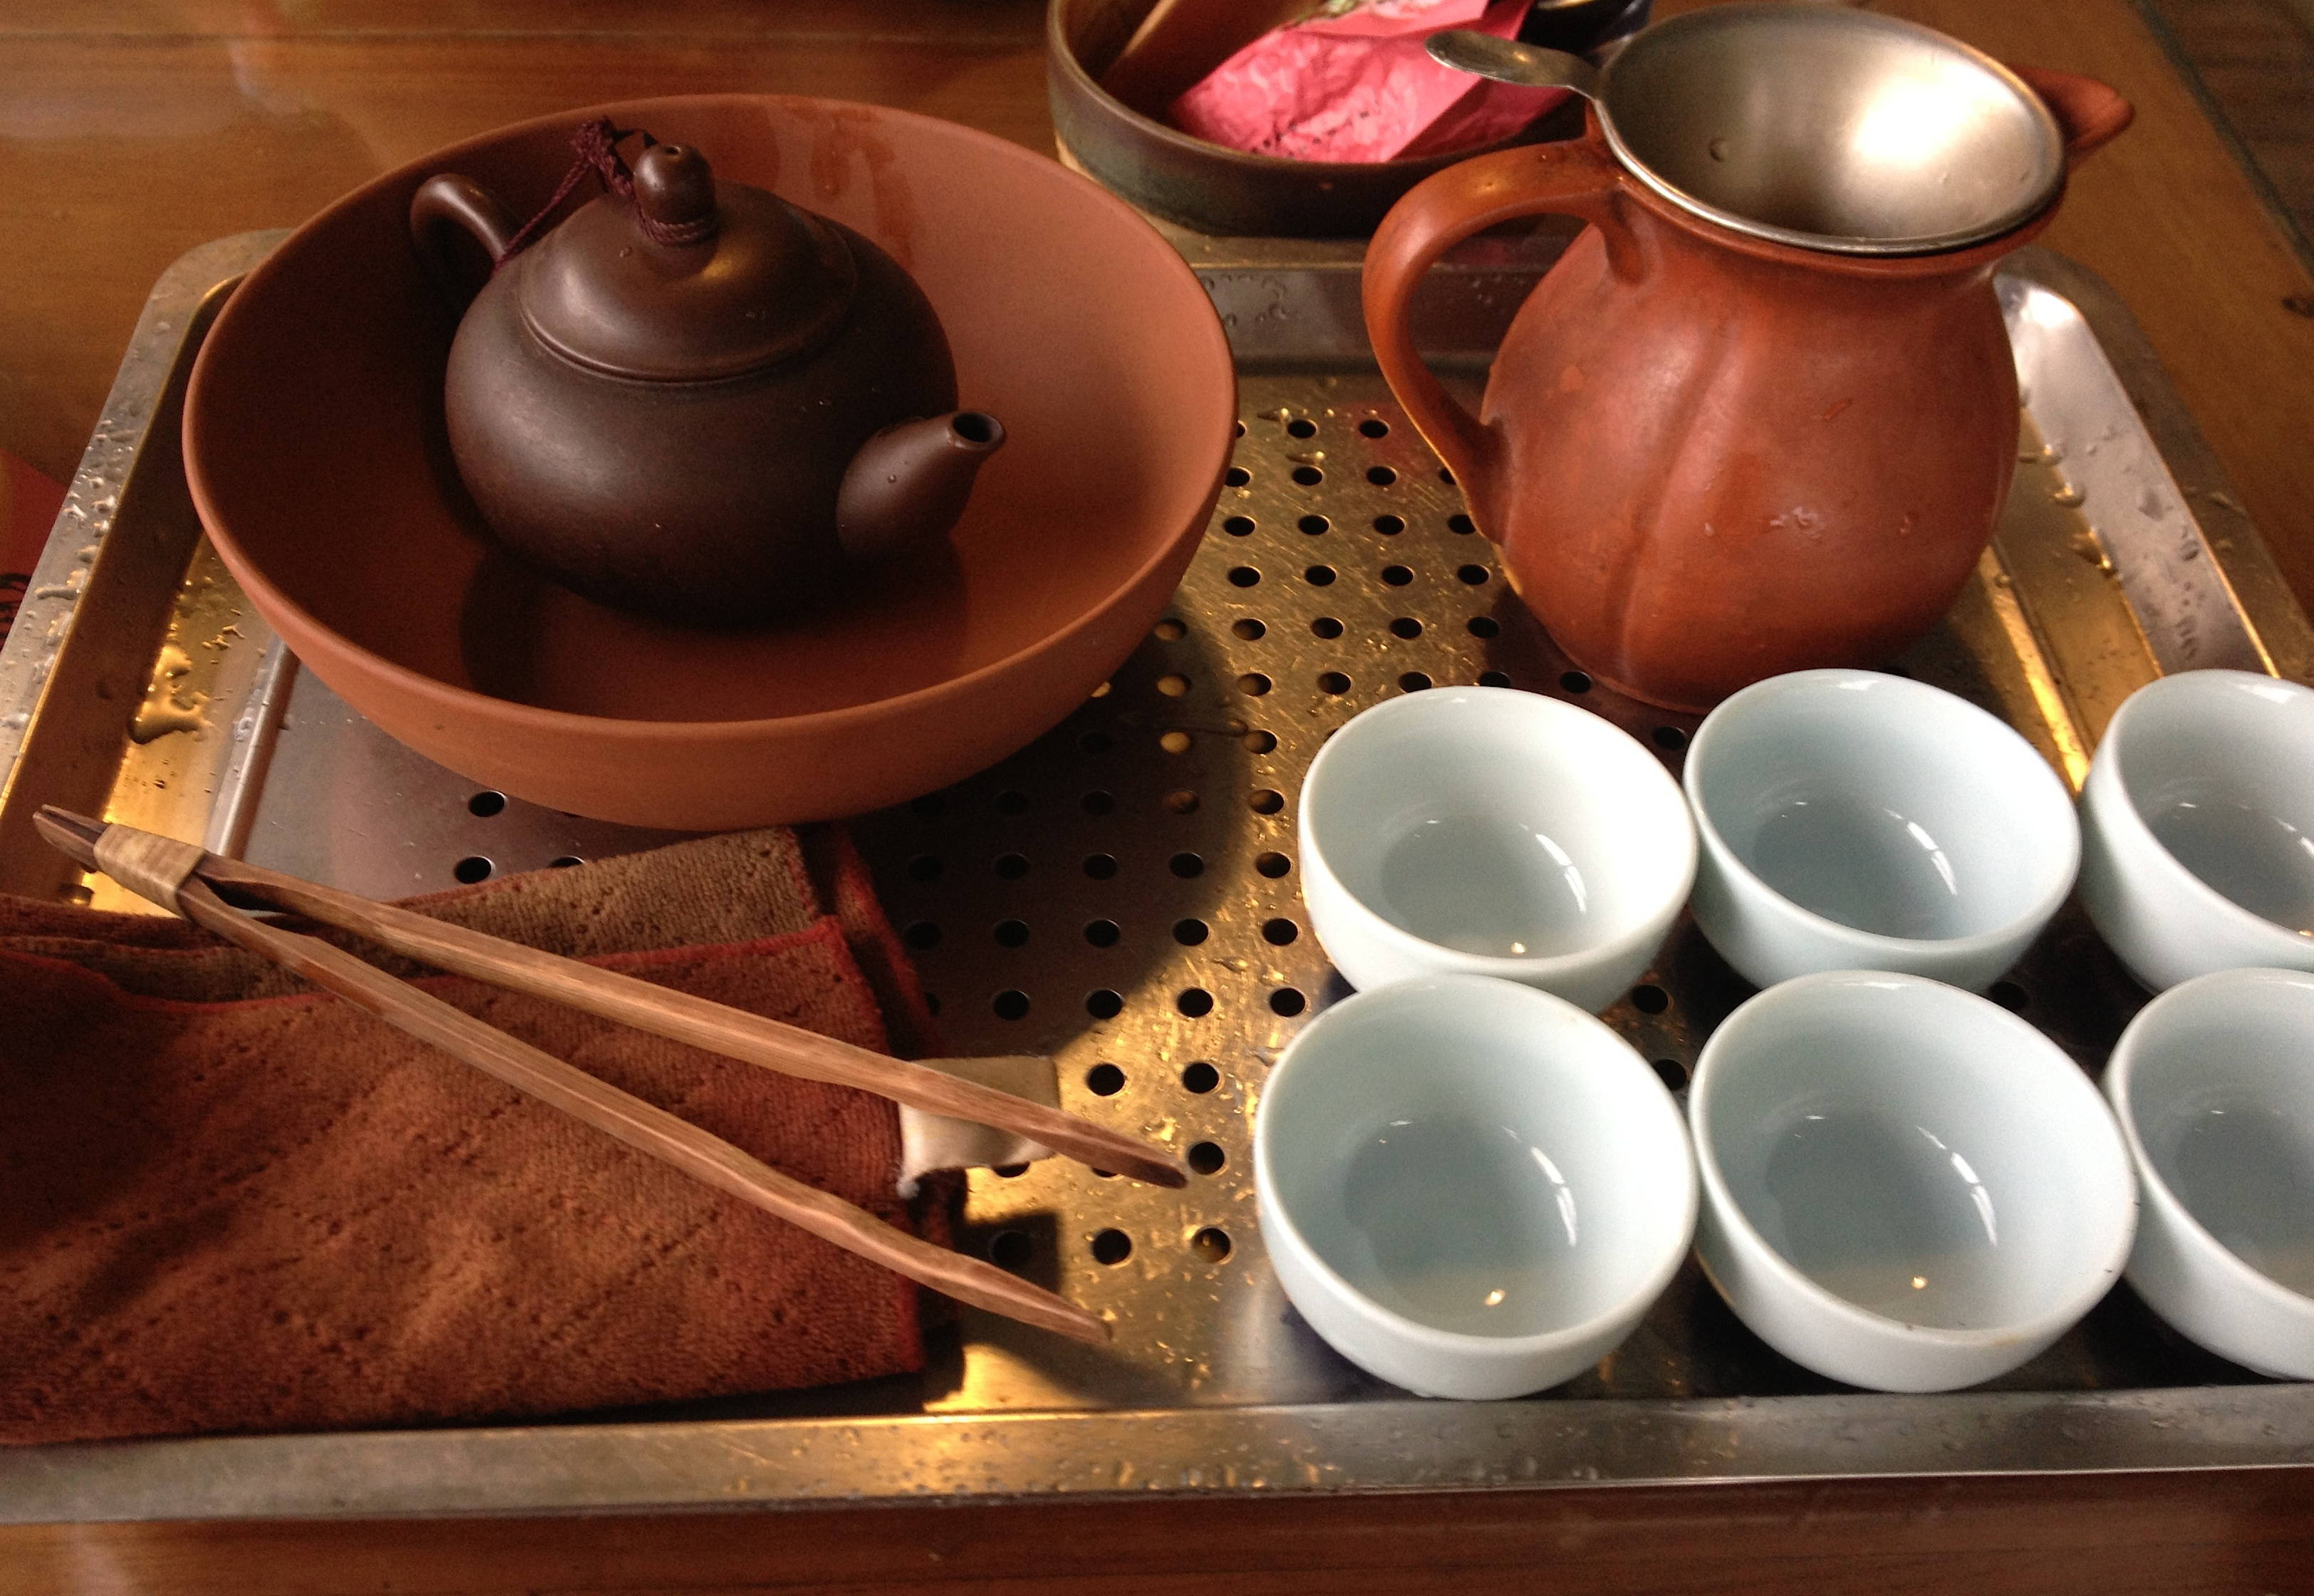 chinese tea Quality chinese tea sets at competitive prices selections include porcelain & ceramic tea sets, yixing clay tea sets, and gongfu tea sets.